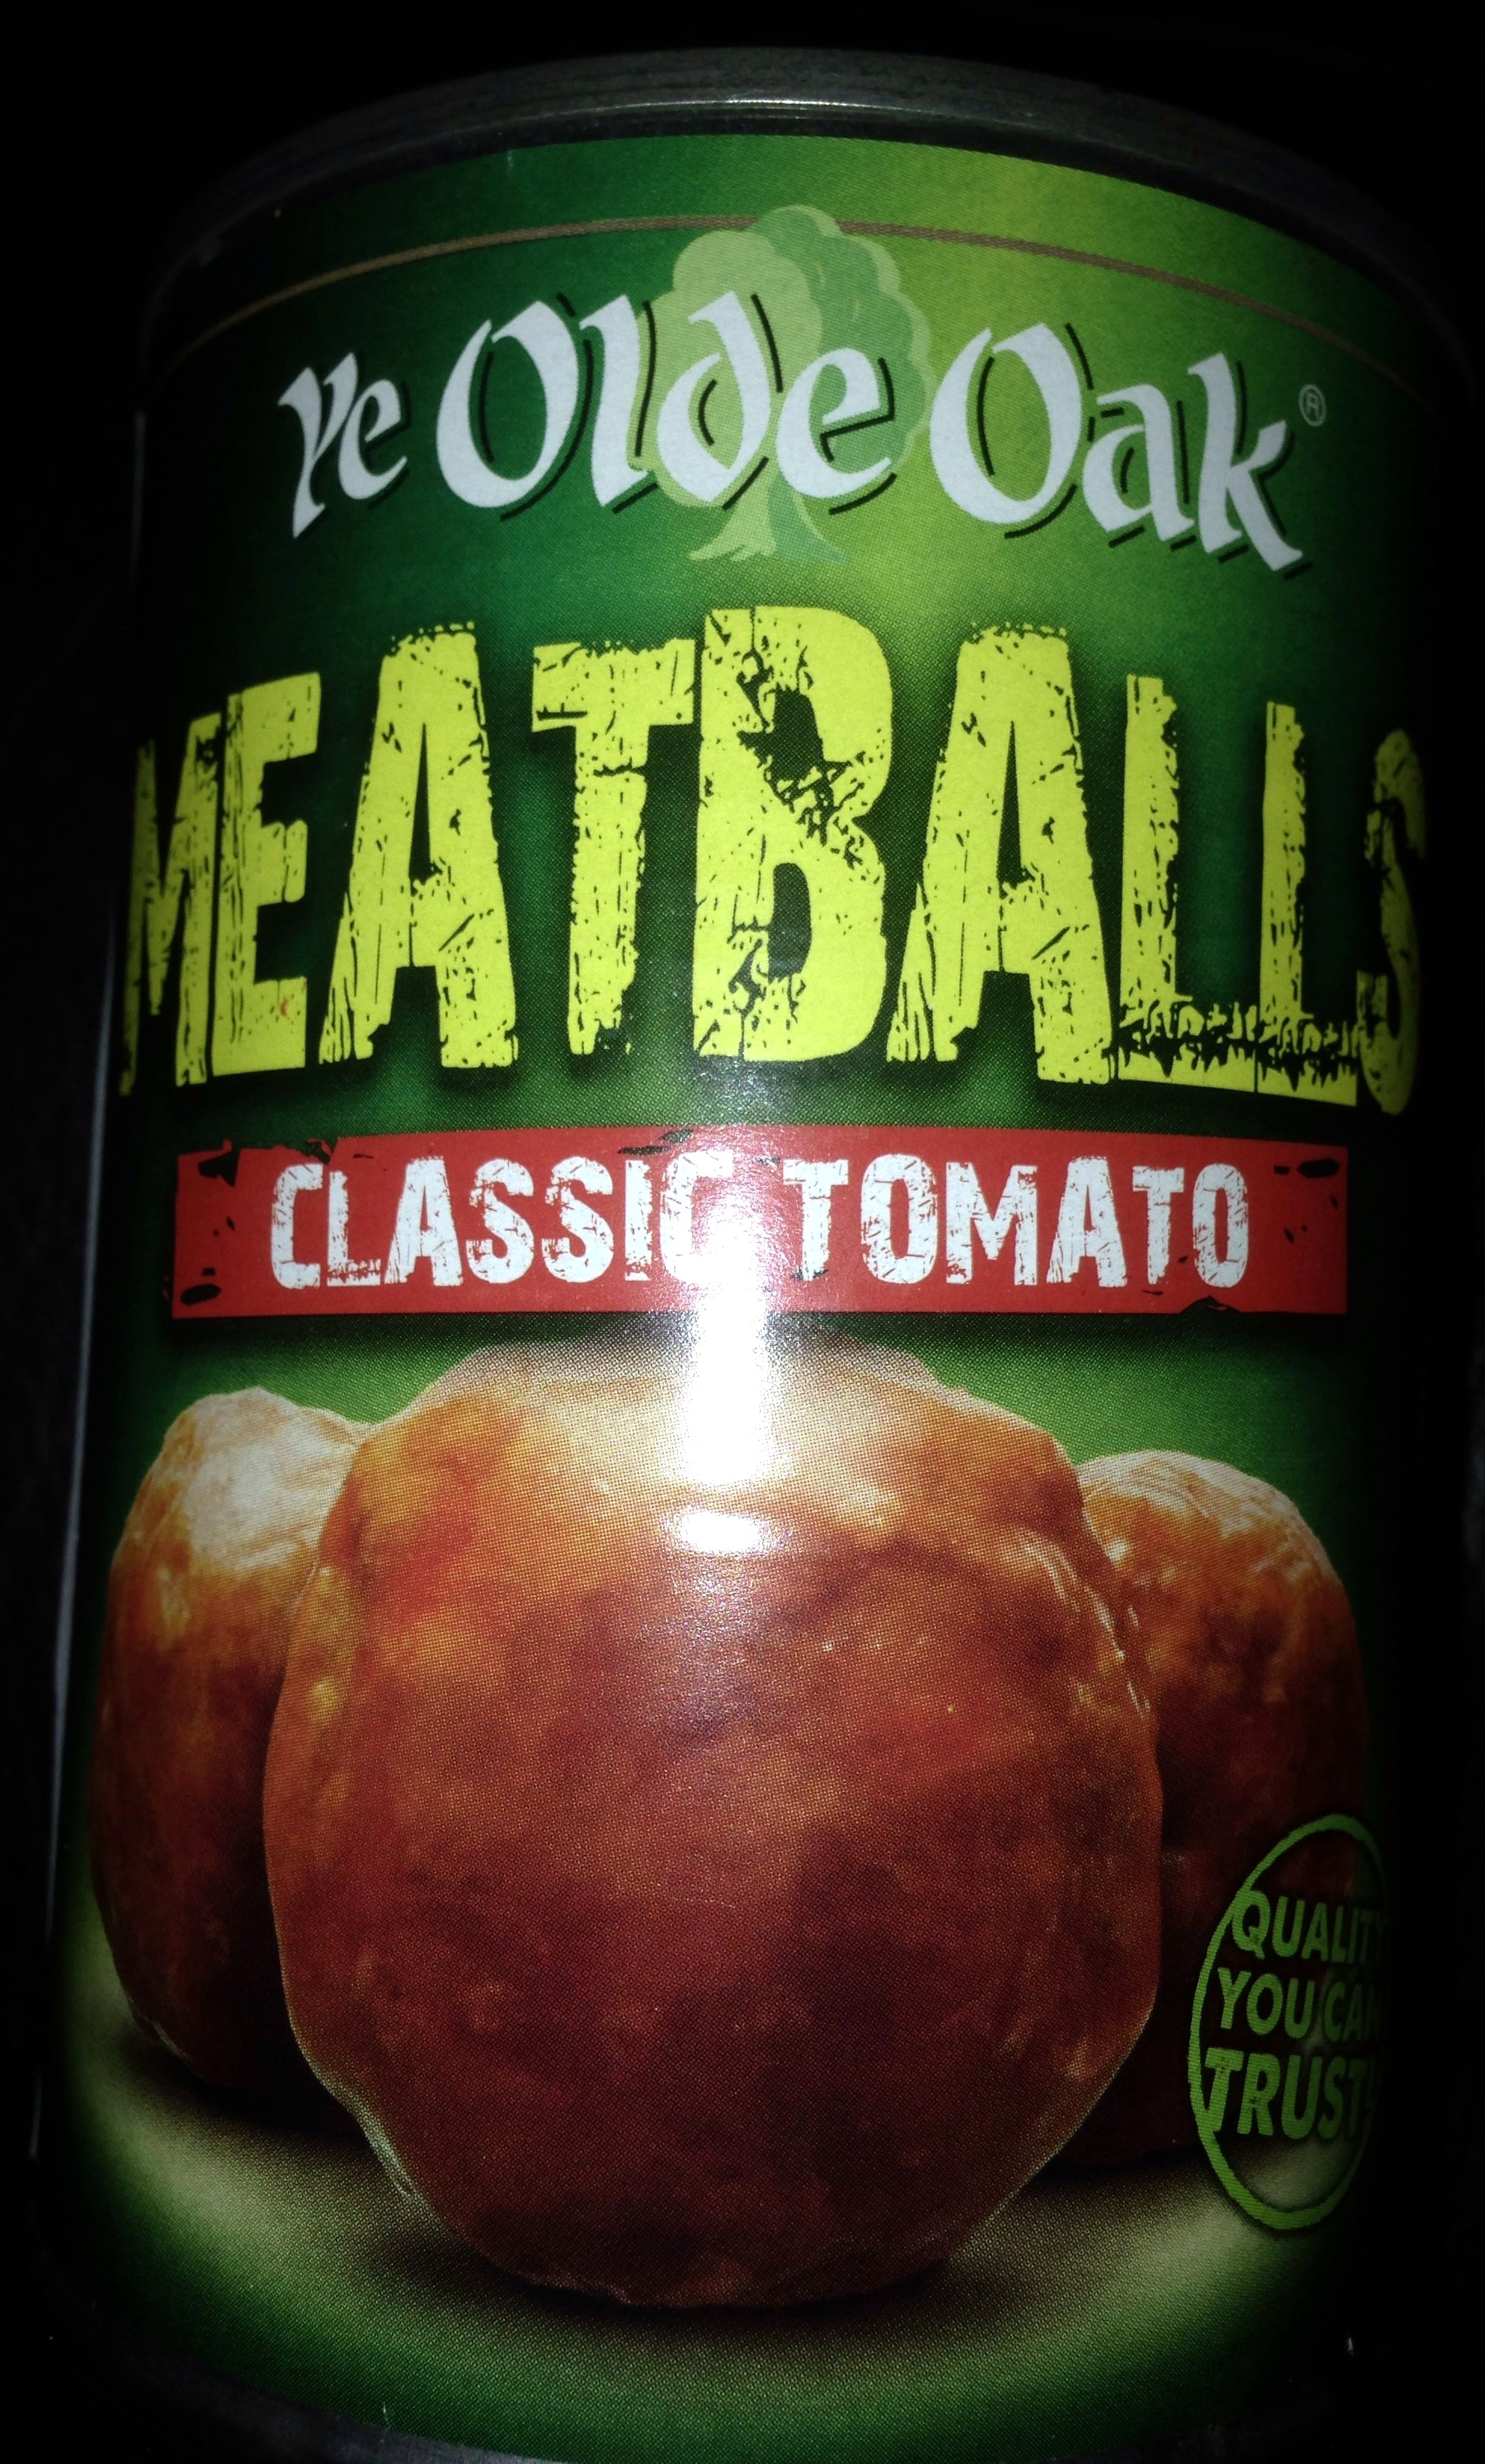 Meatballs - Product